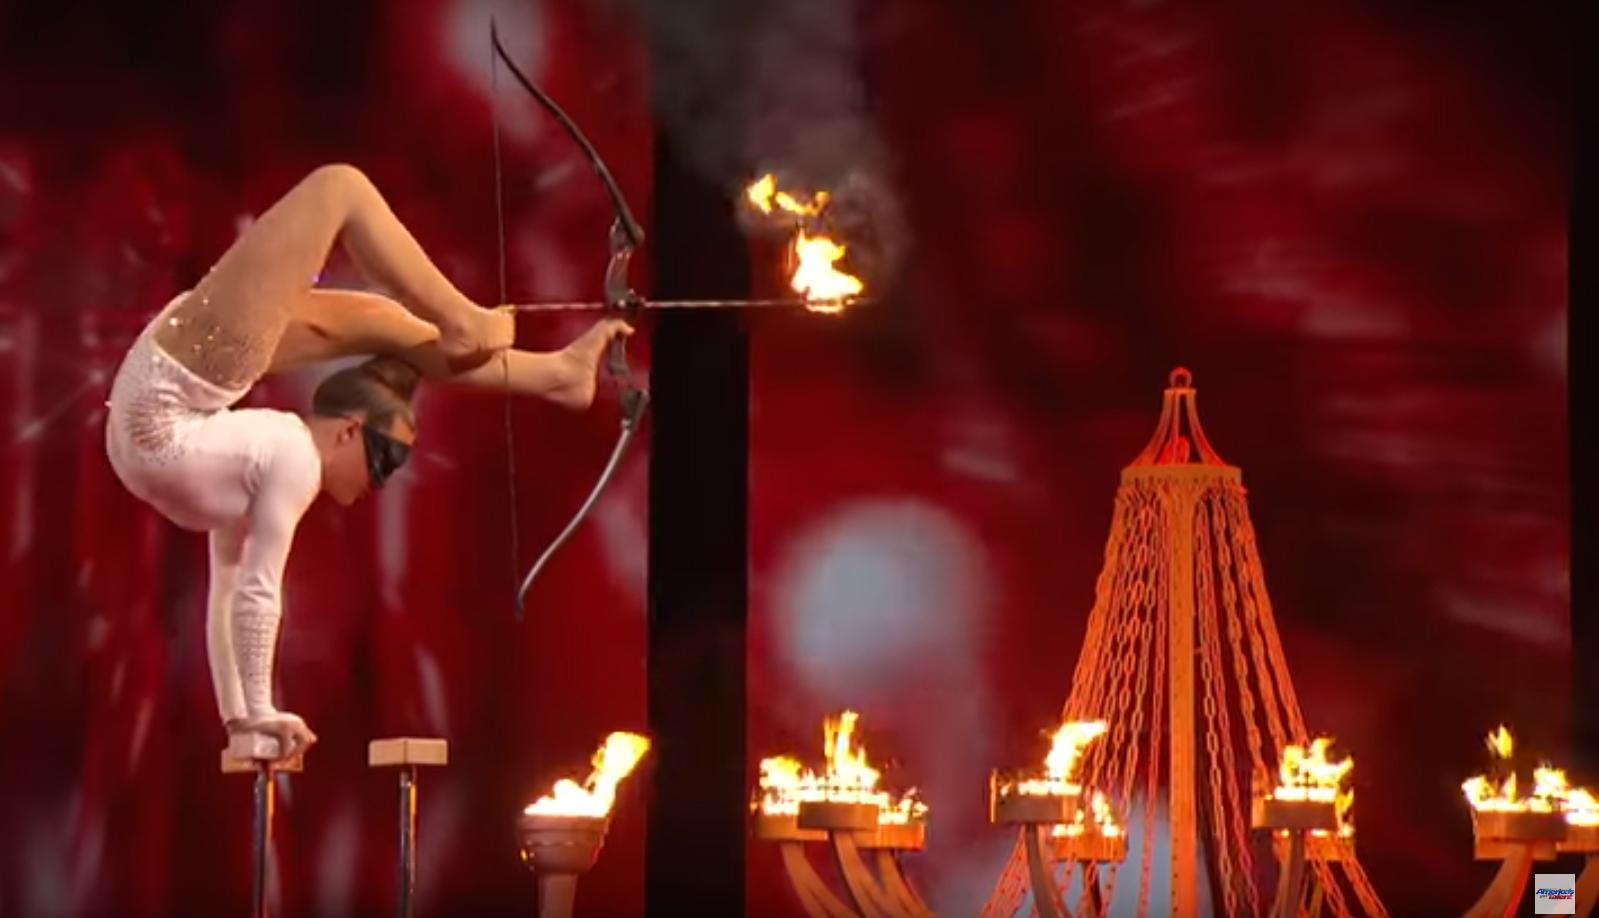 America's Got Talent  Contestant Shoots Flaming Arrow With Feet While Blindfolded!